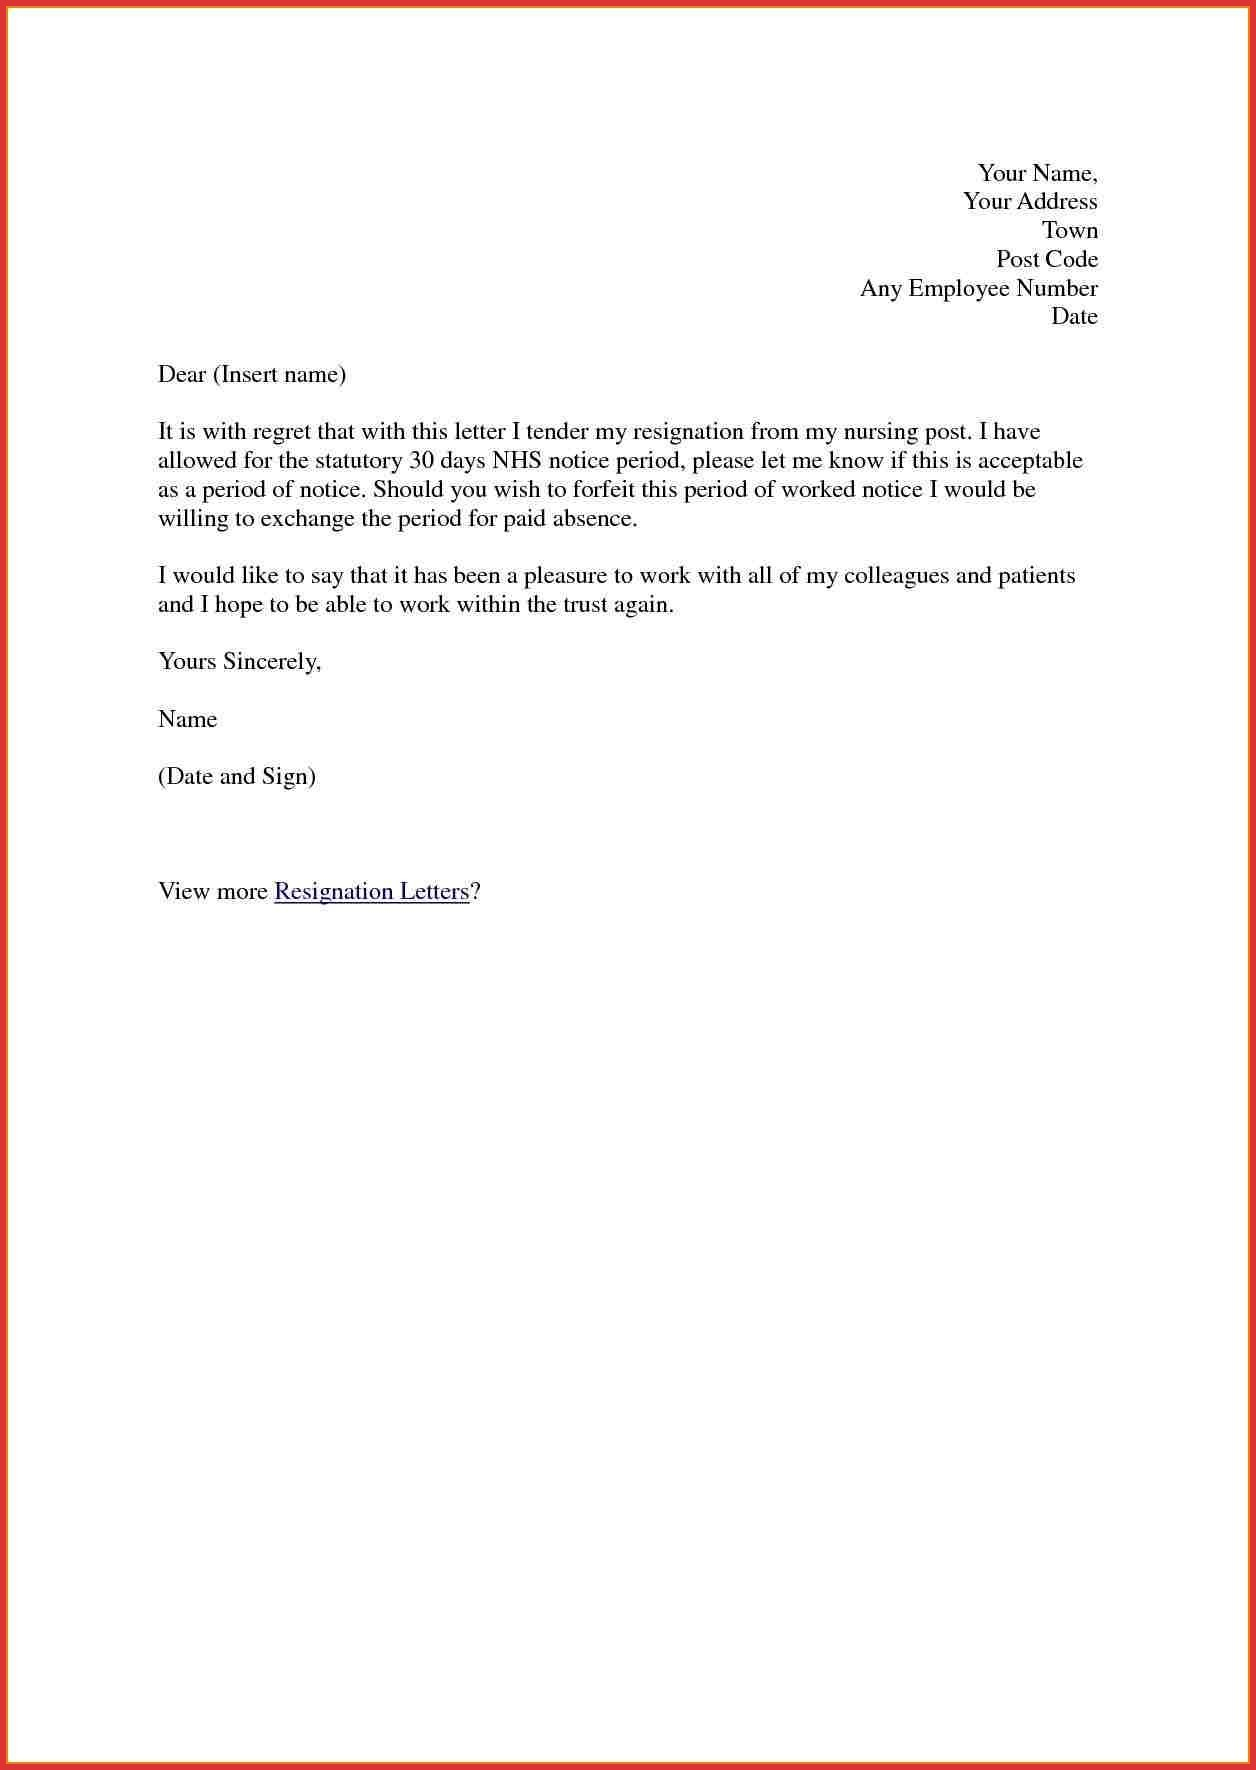 Resignation Letter Free Template Download - Resignation Letter Sample Notice Period Copy Lovely Days Picture